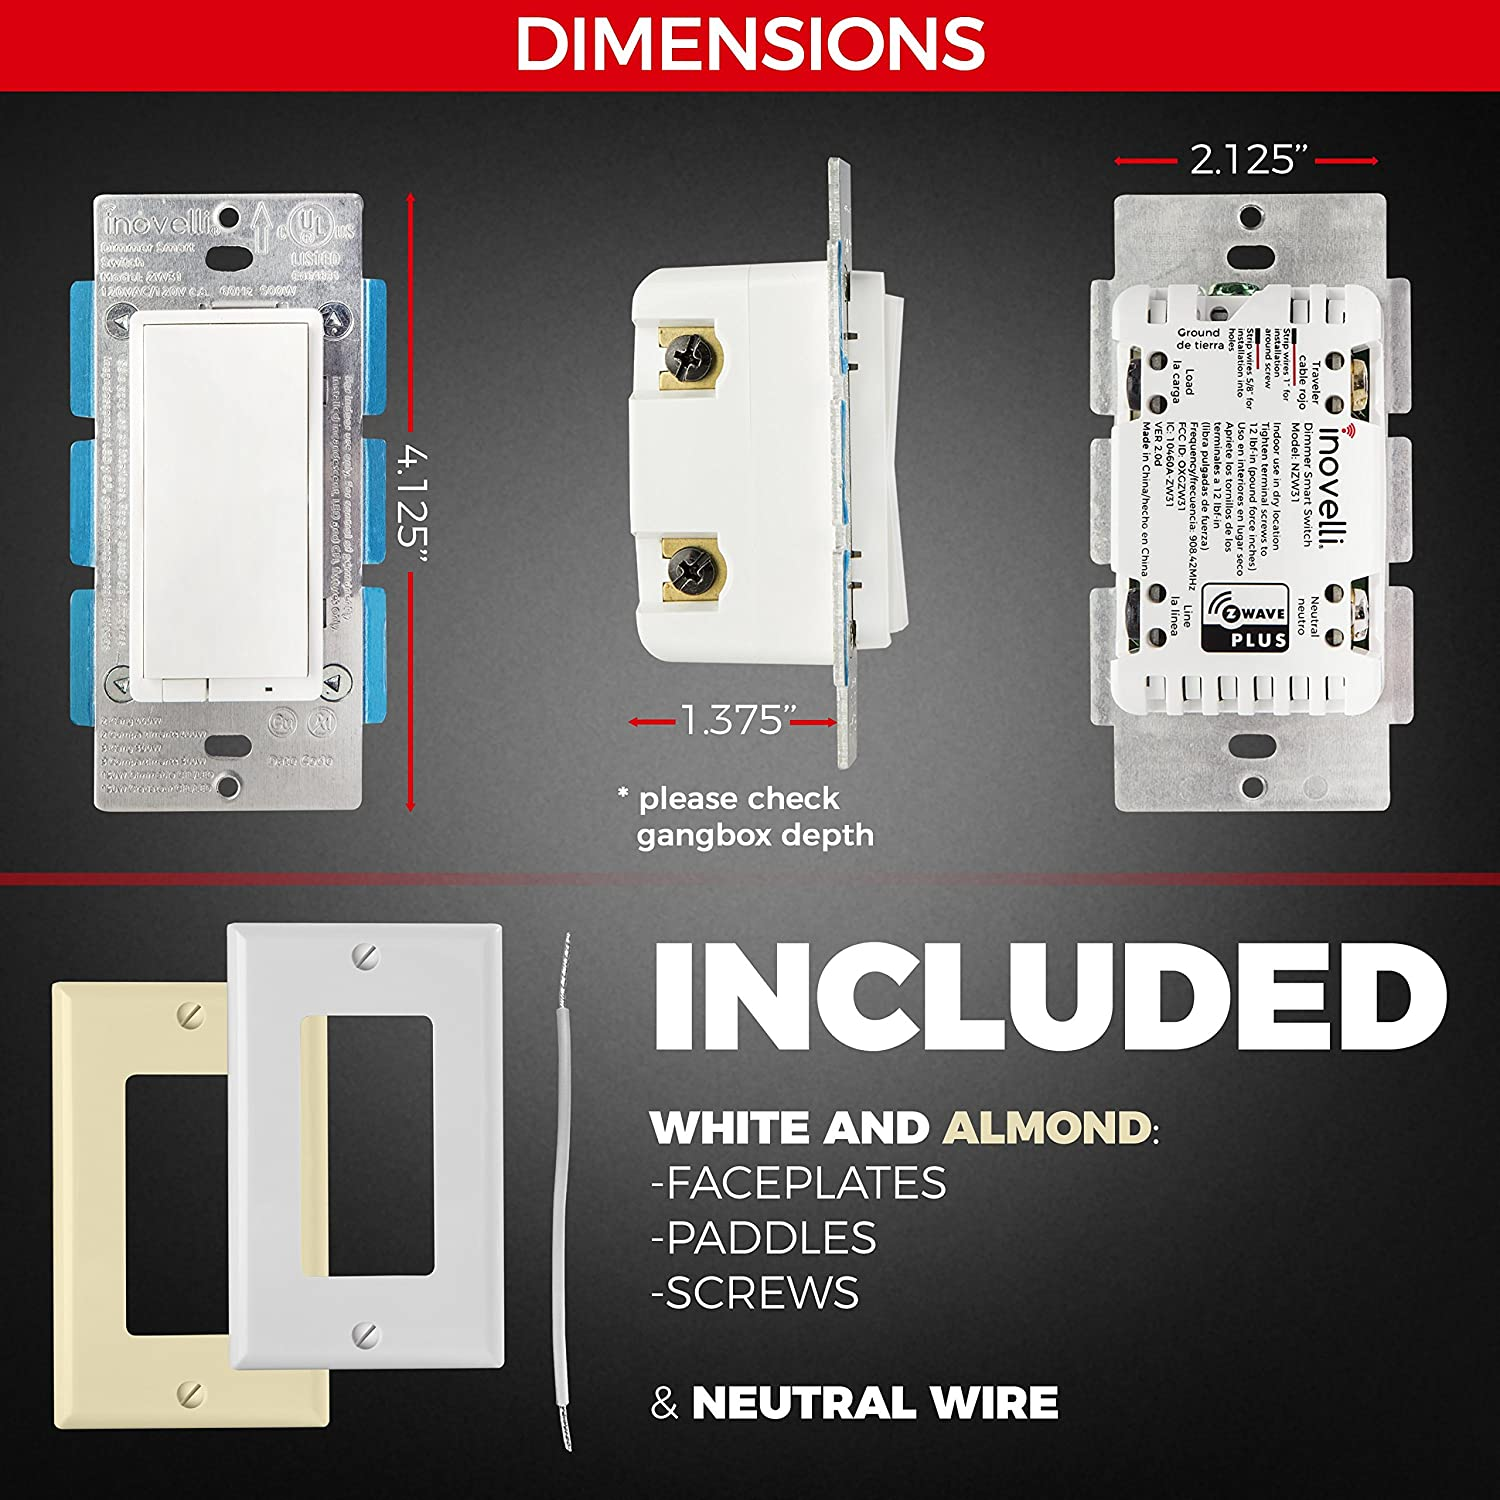 Z Wave Dimmer Switch Repeater Scene Enabled Acts As Button For Rocker Wiring Diagram Further 4 Way Switches With Samsung Smartthings Zwave Plus Only Other Hubs Inovelli